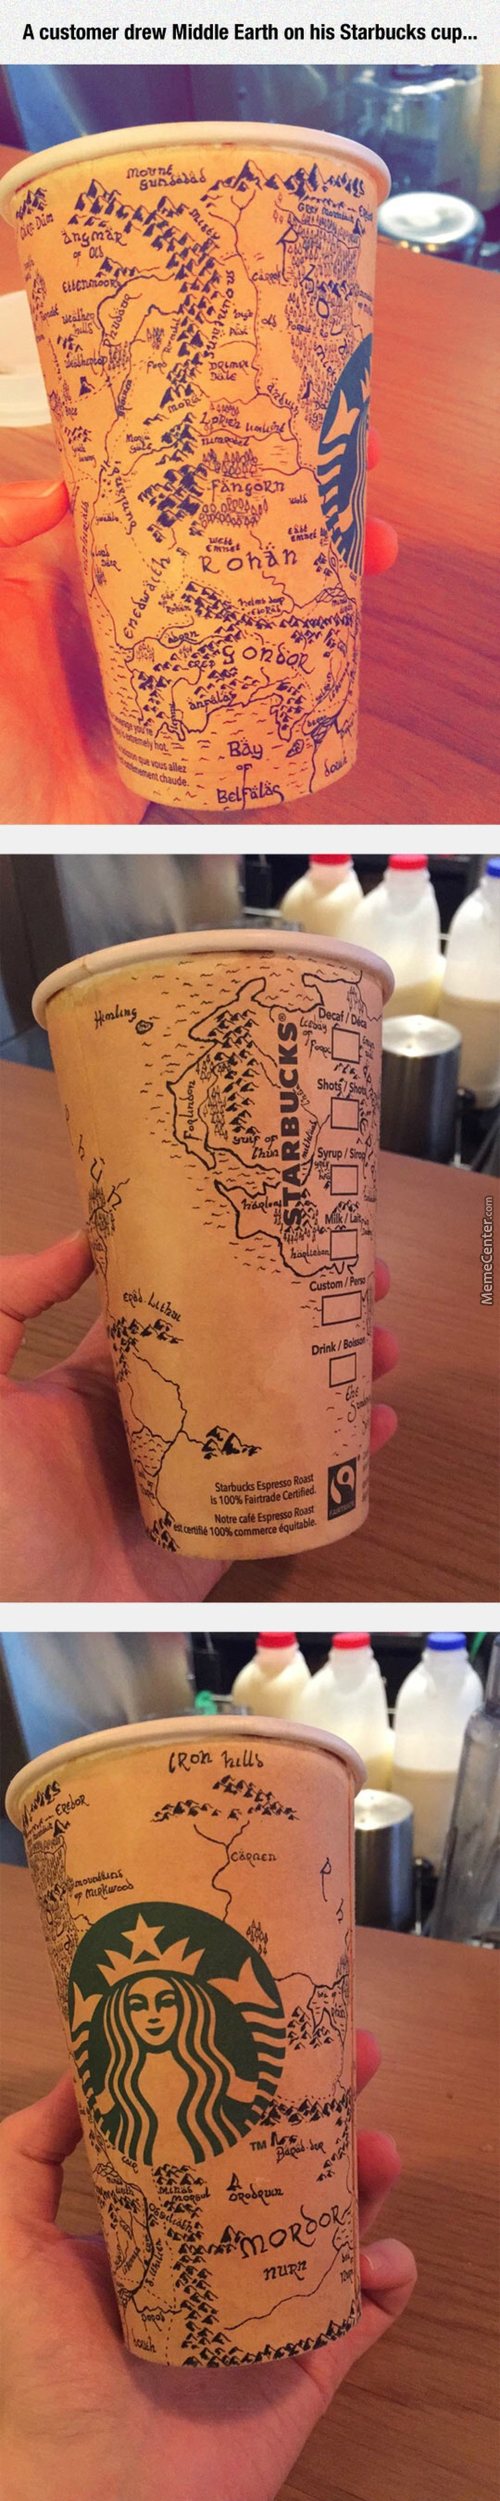 Starbucks Should Do This With Their Cups For Popular Movies Coming Out.